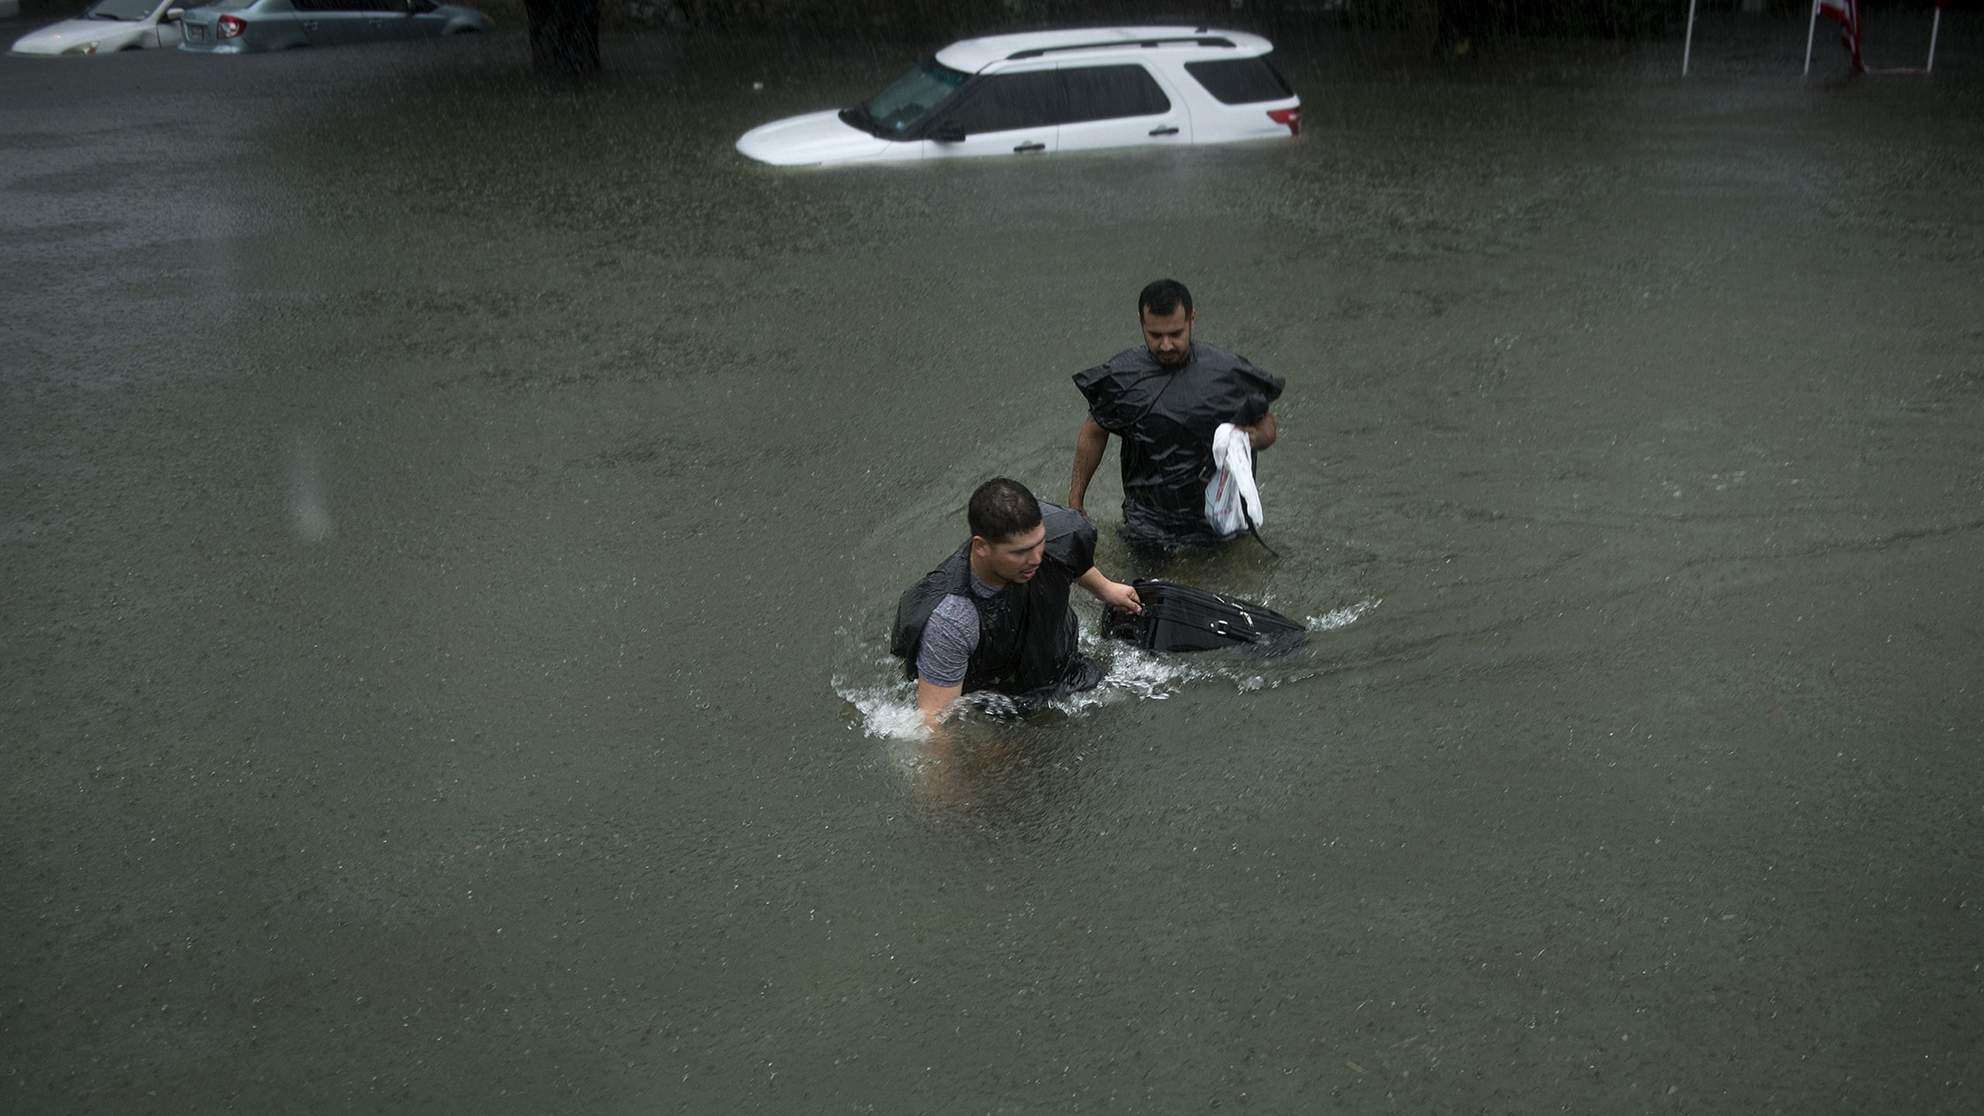 People walk through flooded streets during the aftermath of Hurricane Harvey in Houston, Texas, on Aug. 27, 2017.